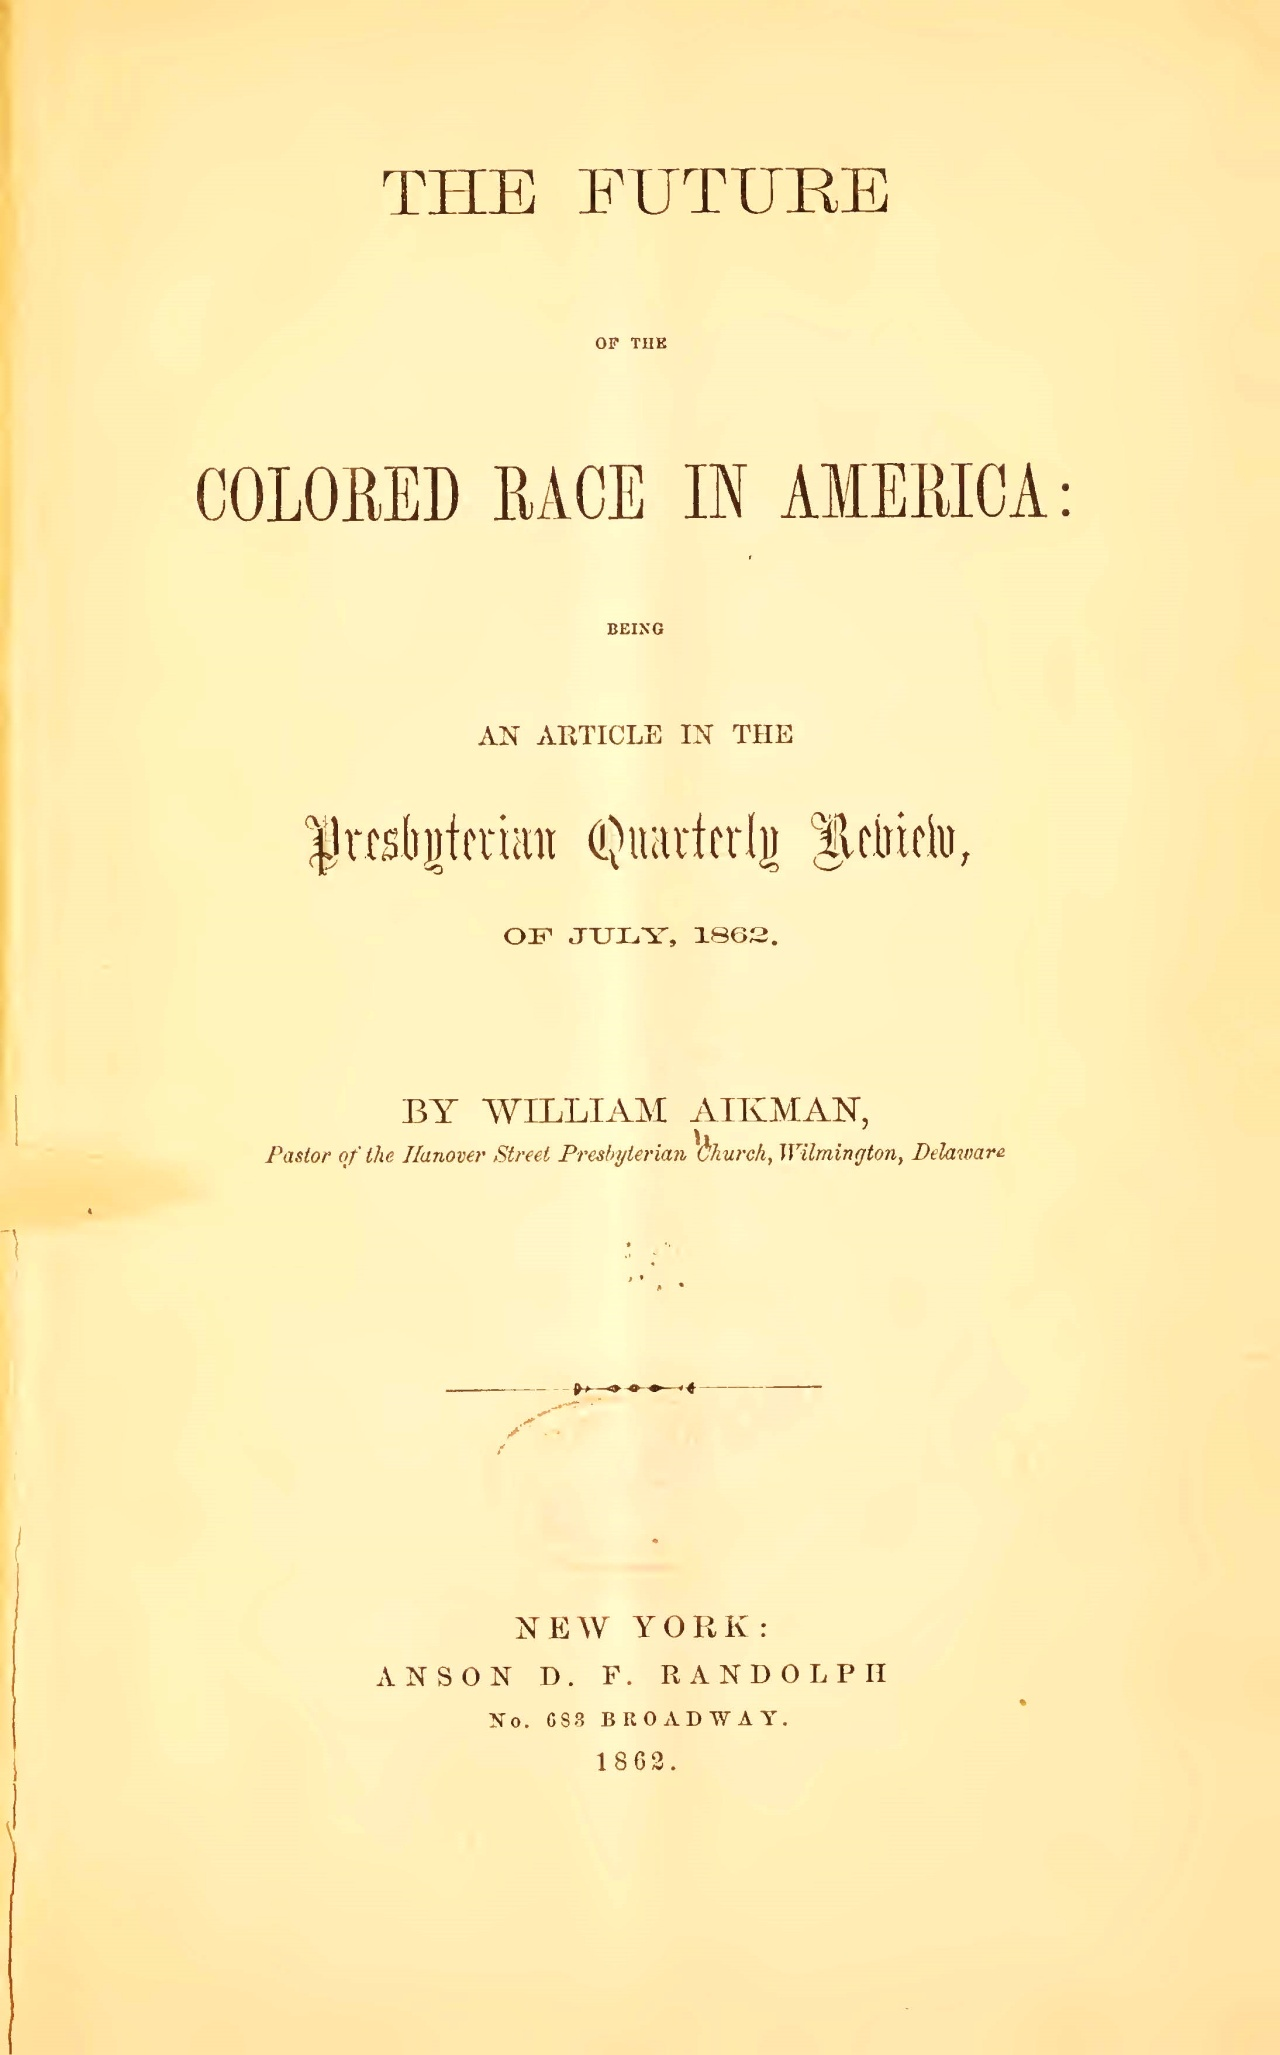 Aikman, William, The Future of the Colored Race in America Title Page.jpg